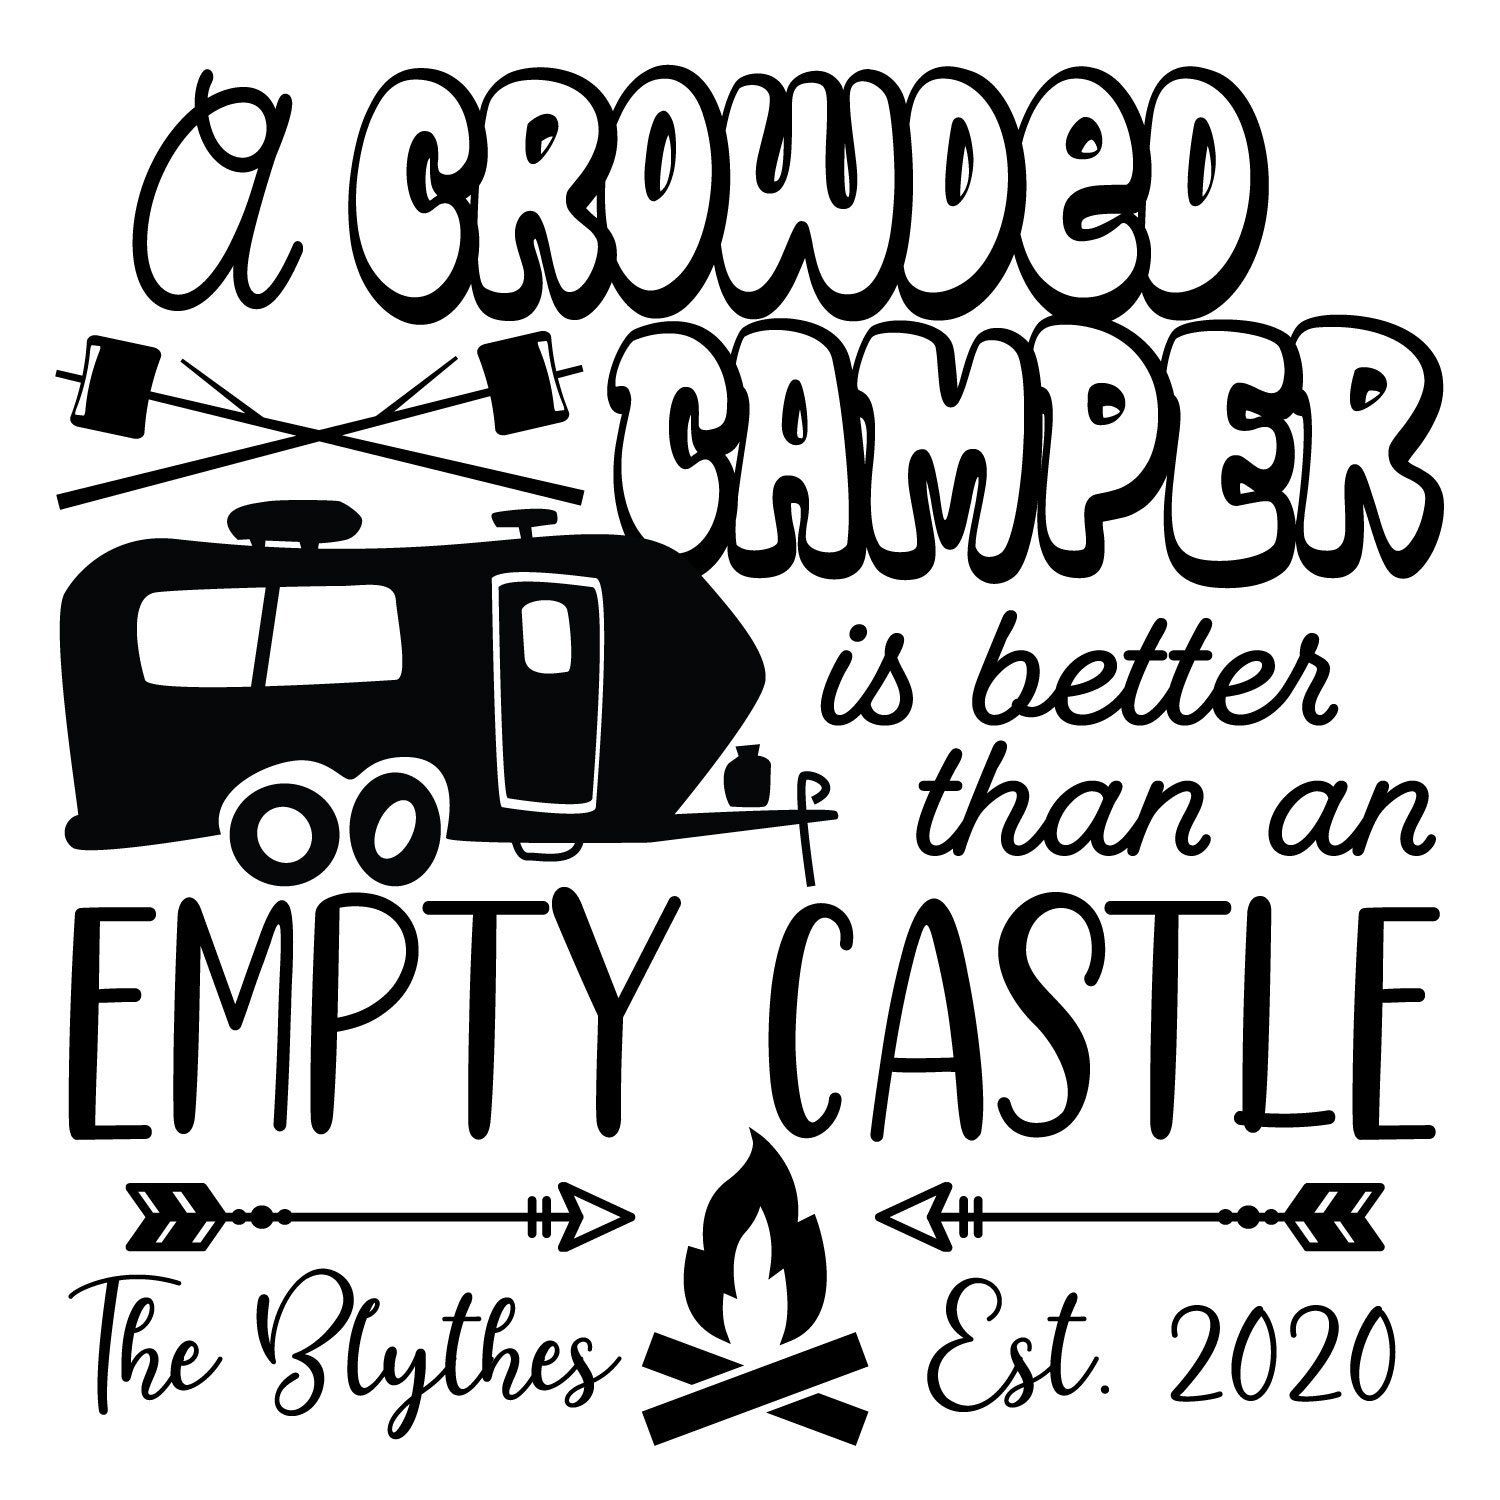 Official Covid-19 Quarantine Camping Vinyl Bumper Sticker Decal 5 This Is How We Quarantine By Camping In The Woods